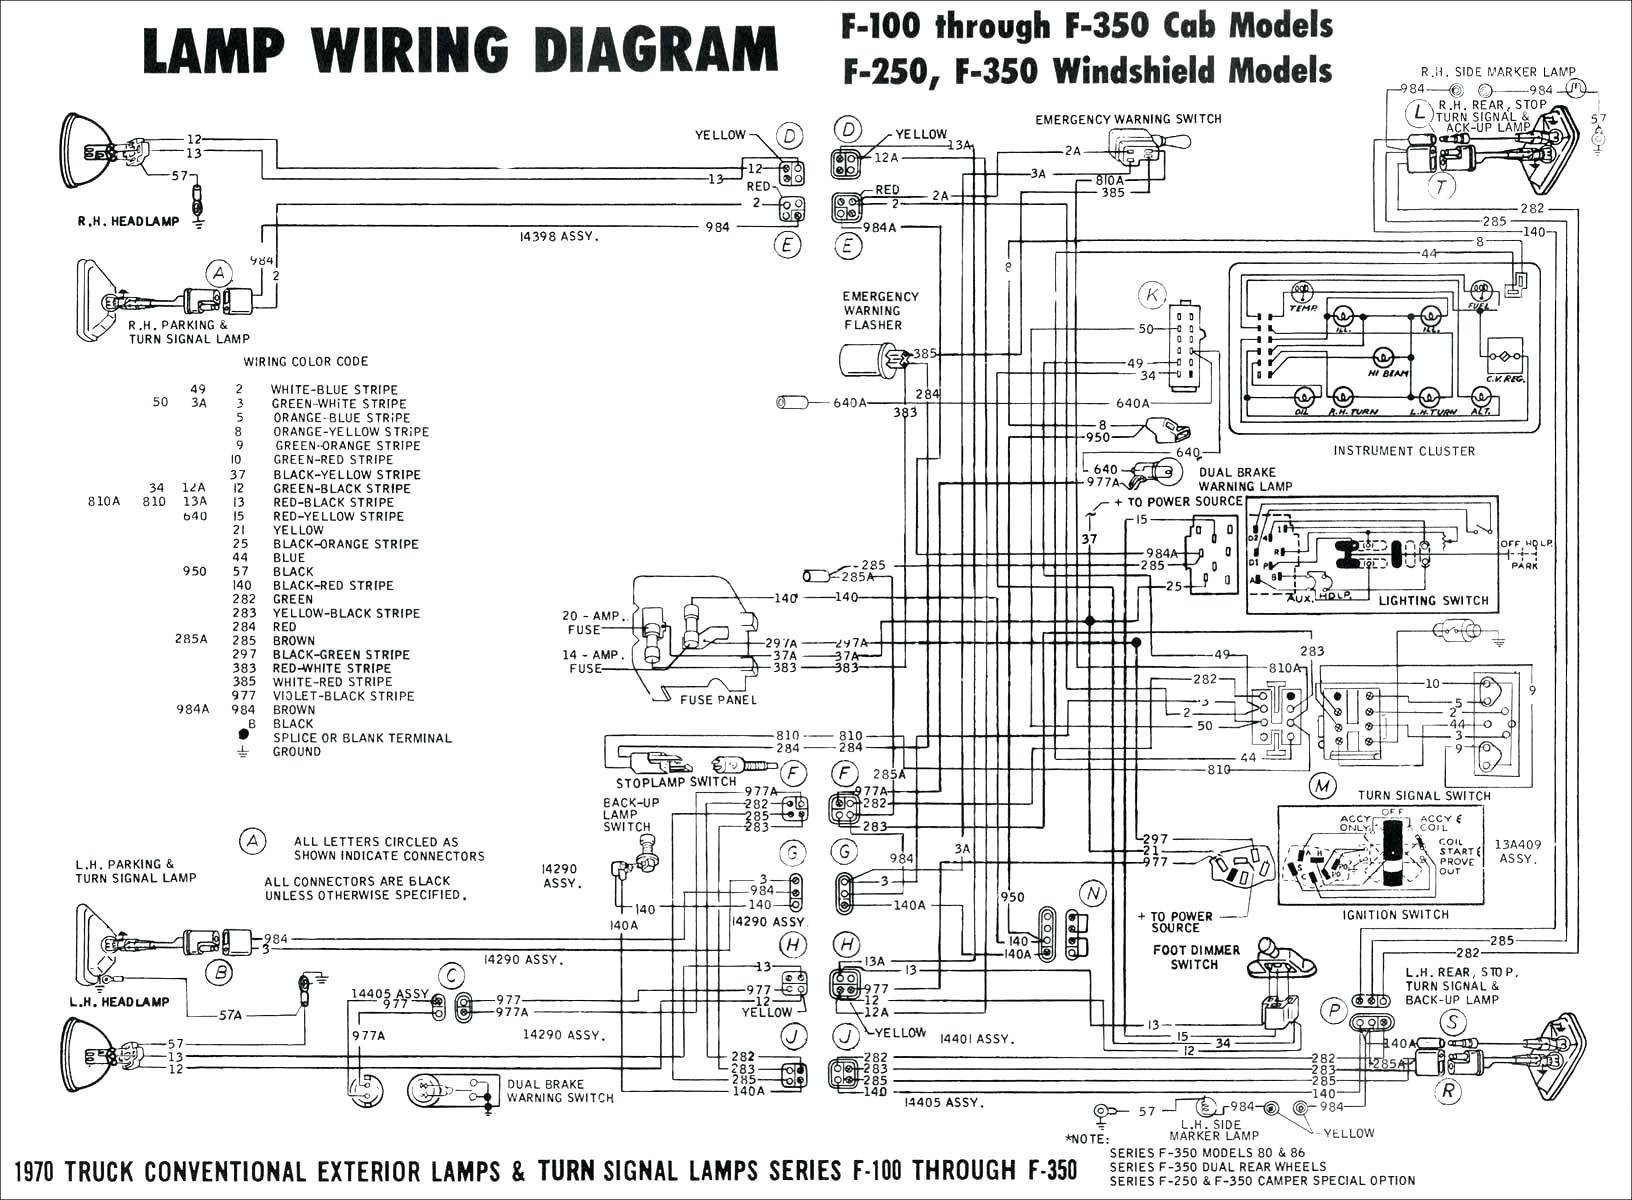 2001 Honda Civic Ex Engine Diagram Wiring Diagram for 2001 Honda Civic Free  About Wiring Diagram